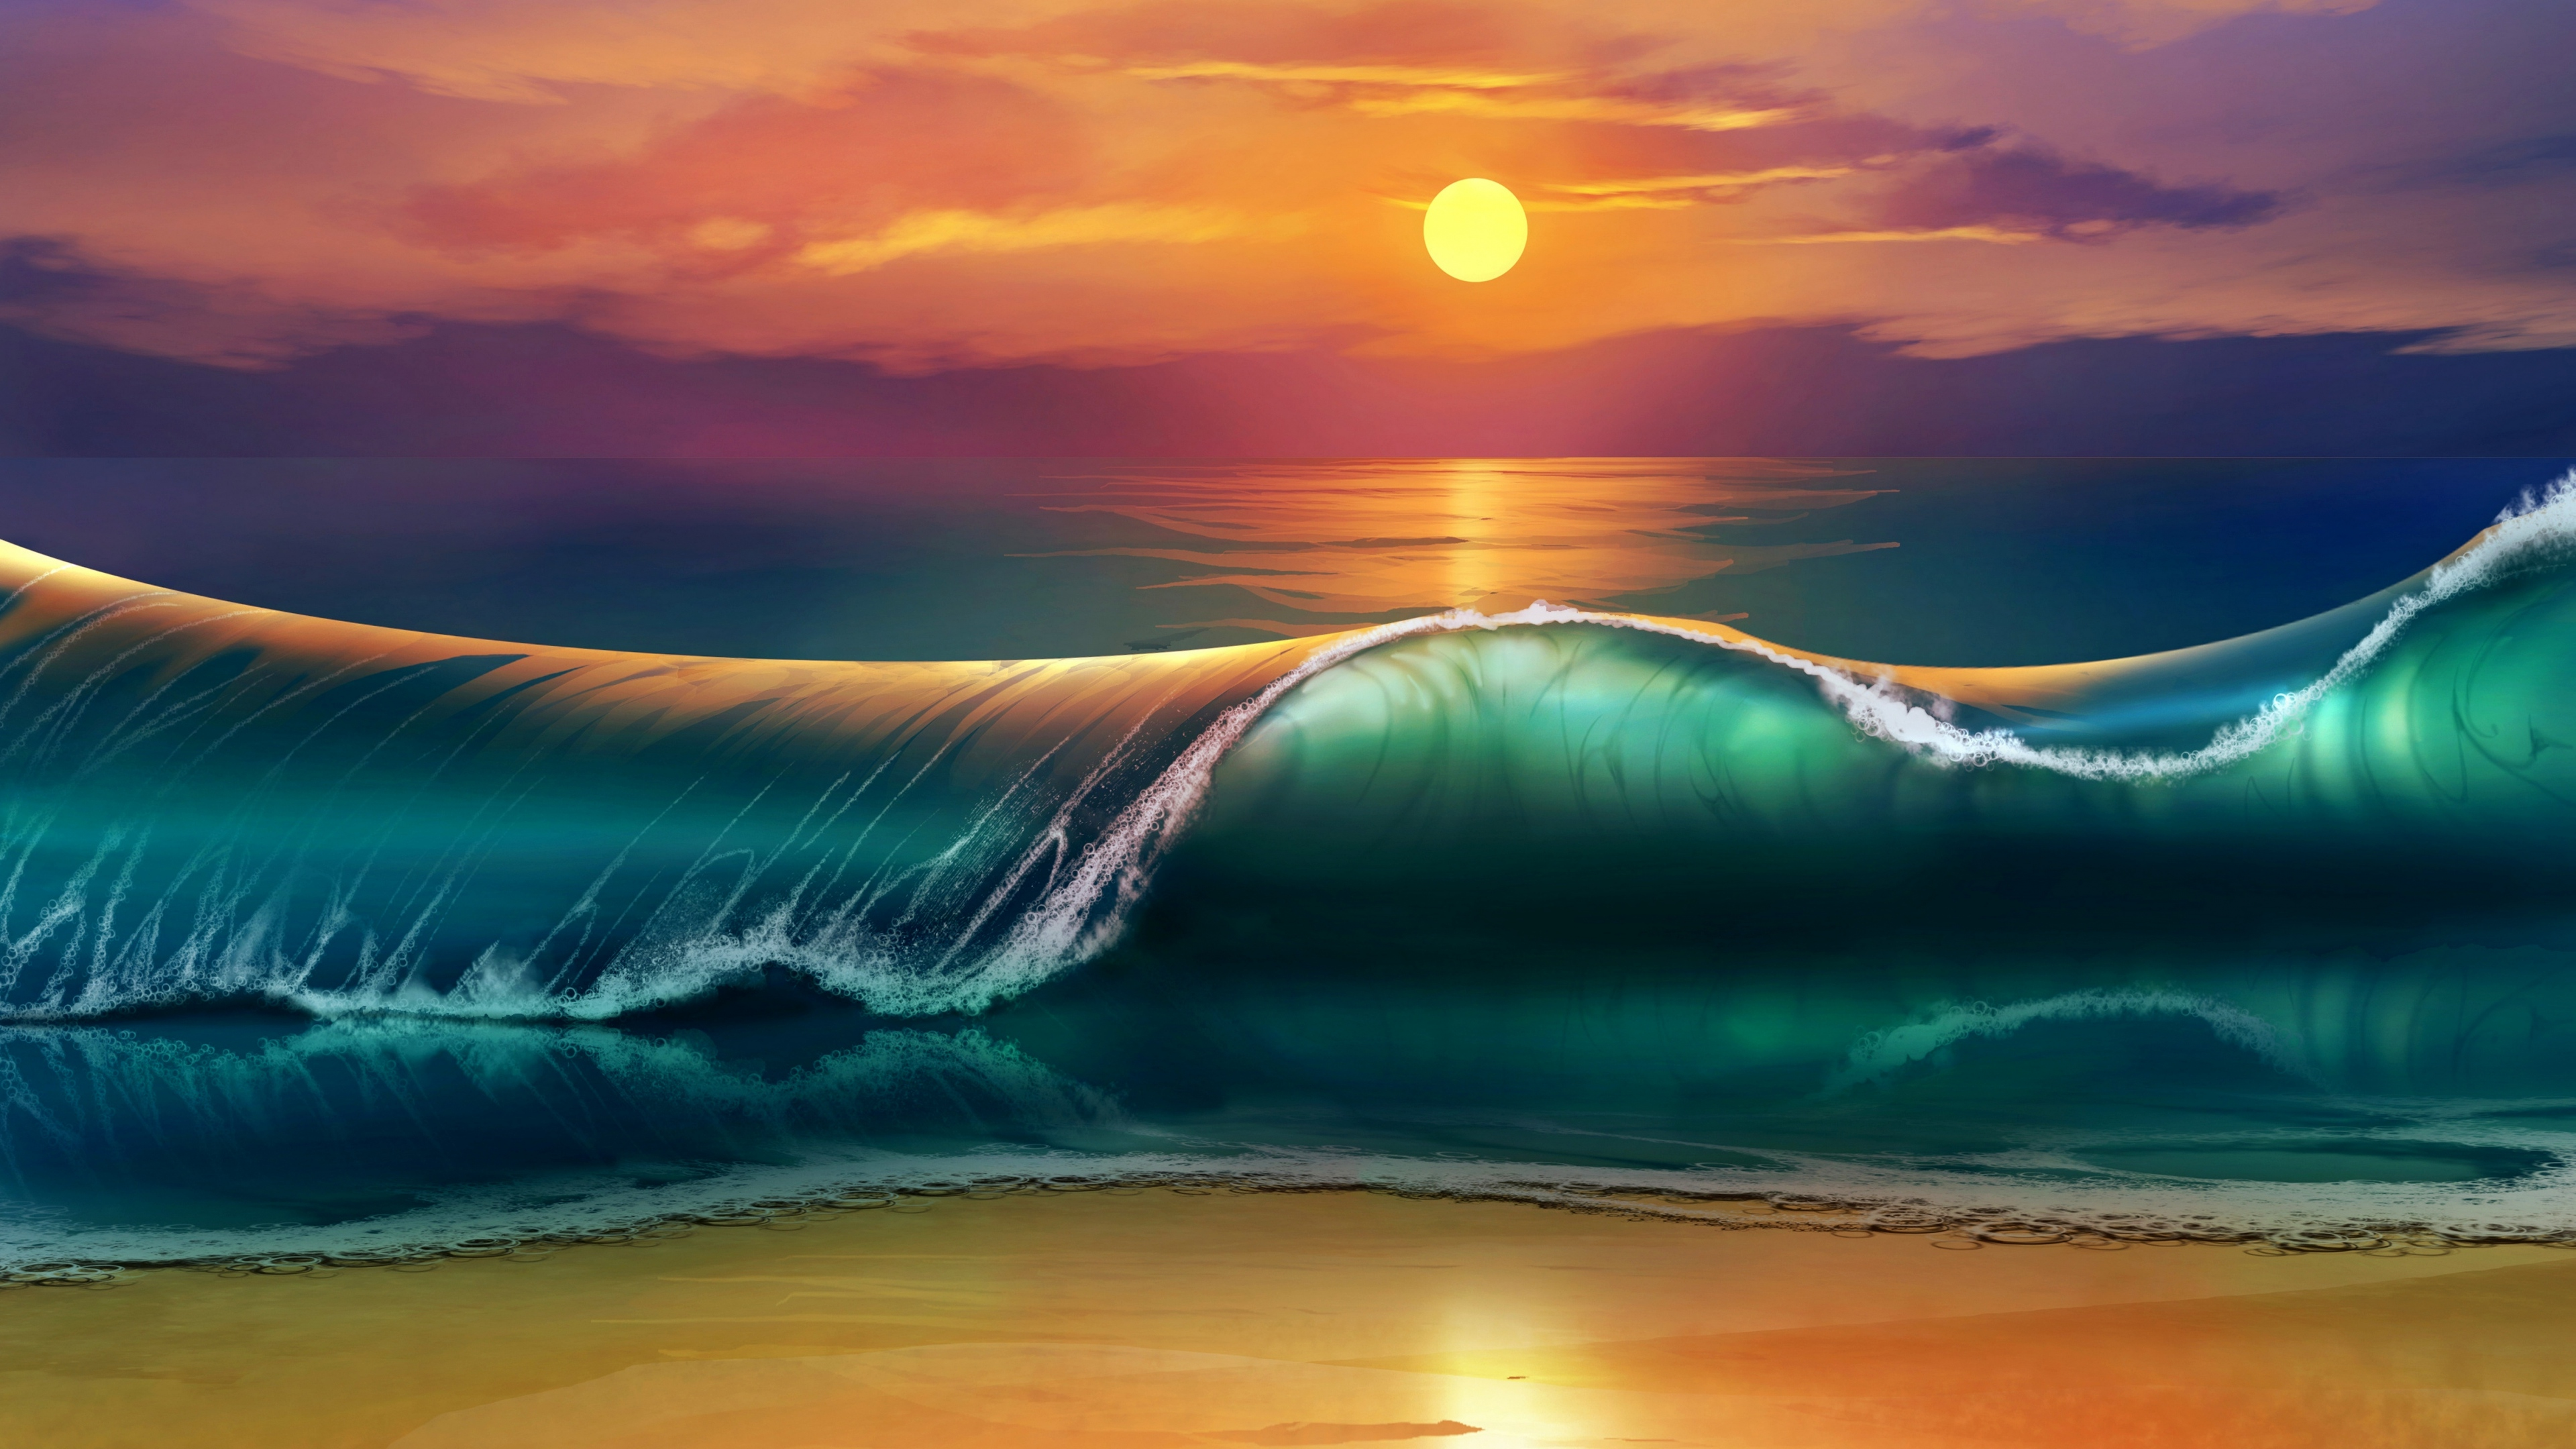 waves 4k ultra hd hd background hd wallpapers ultra hd wallpapers background 4k ultra hd